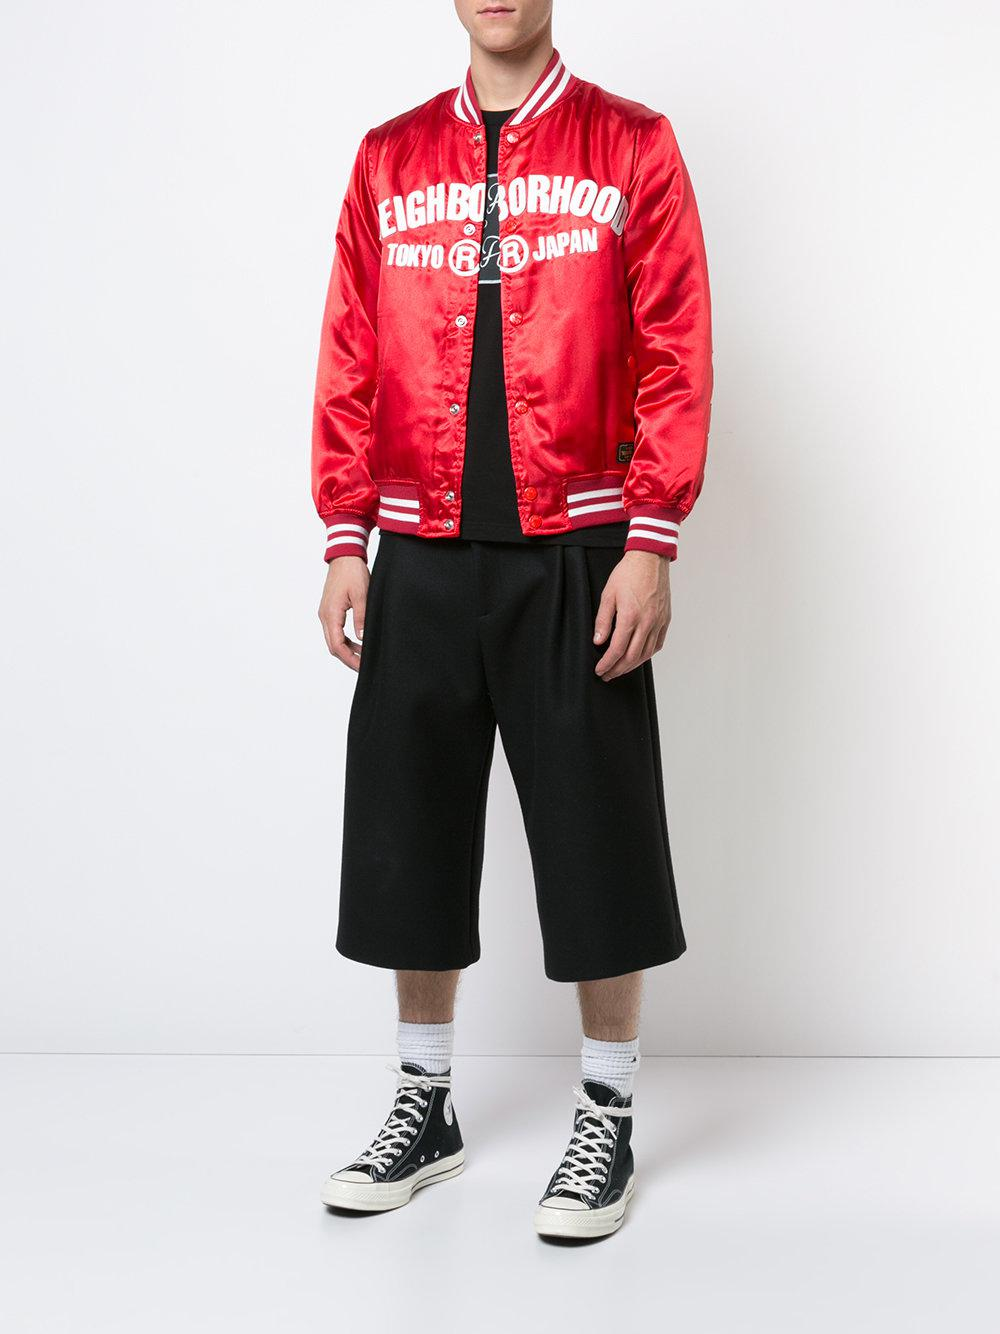 Neighborhood Slogan Print Bomber Jacket in Red for Men